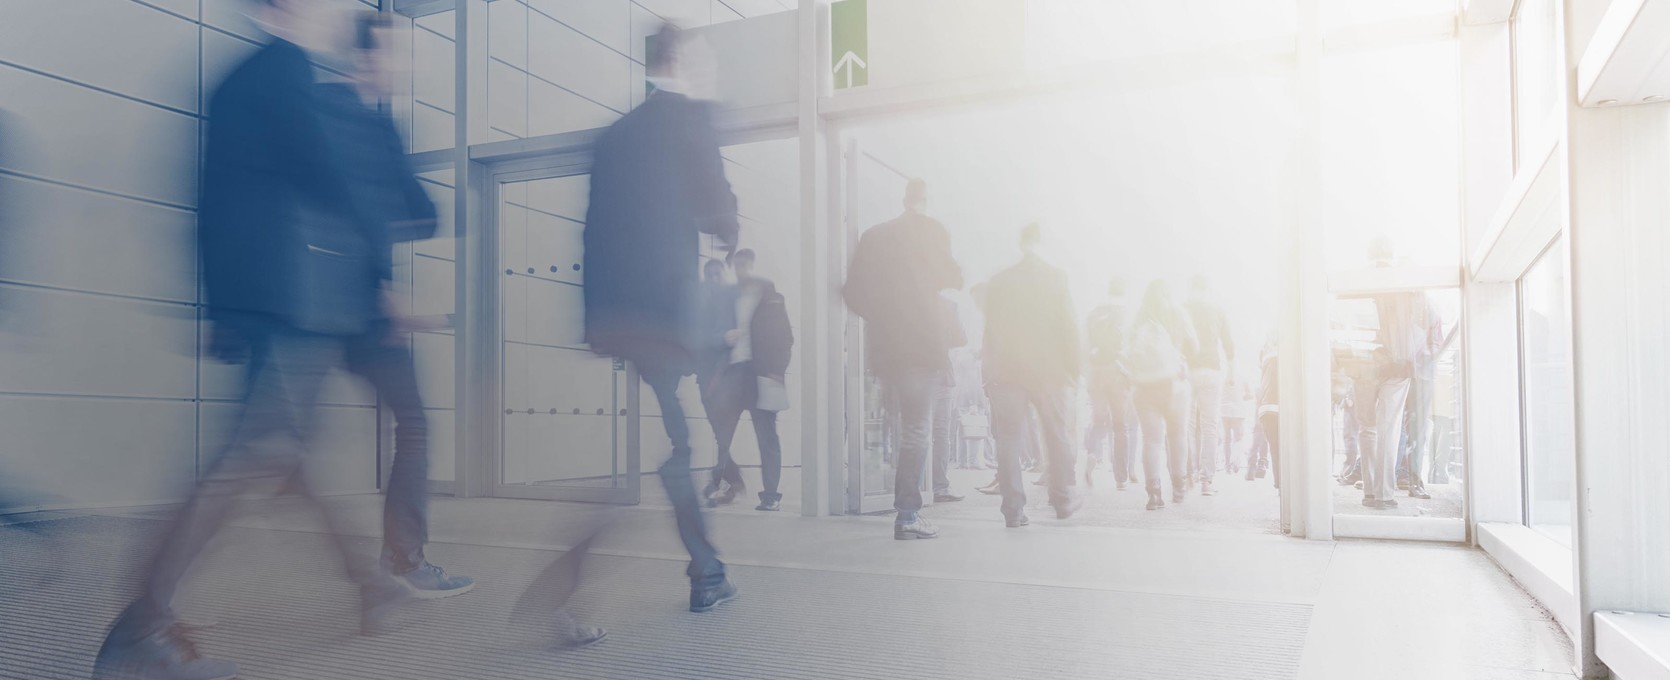 Business professionals entering and exiting building